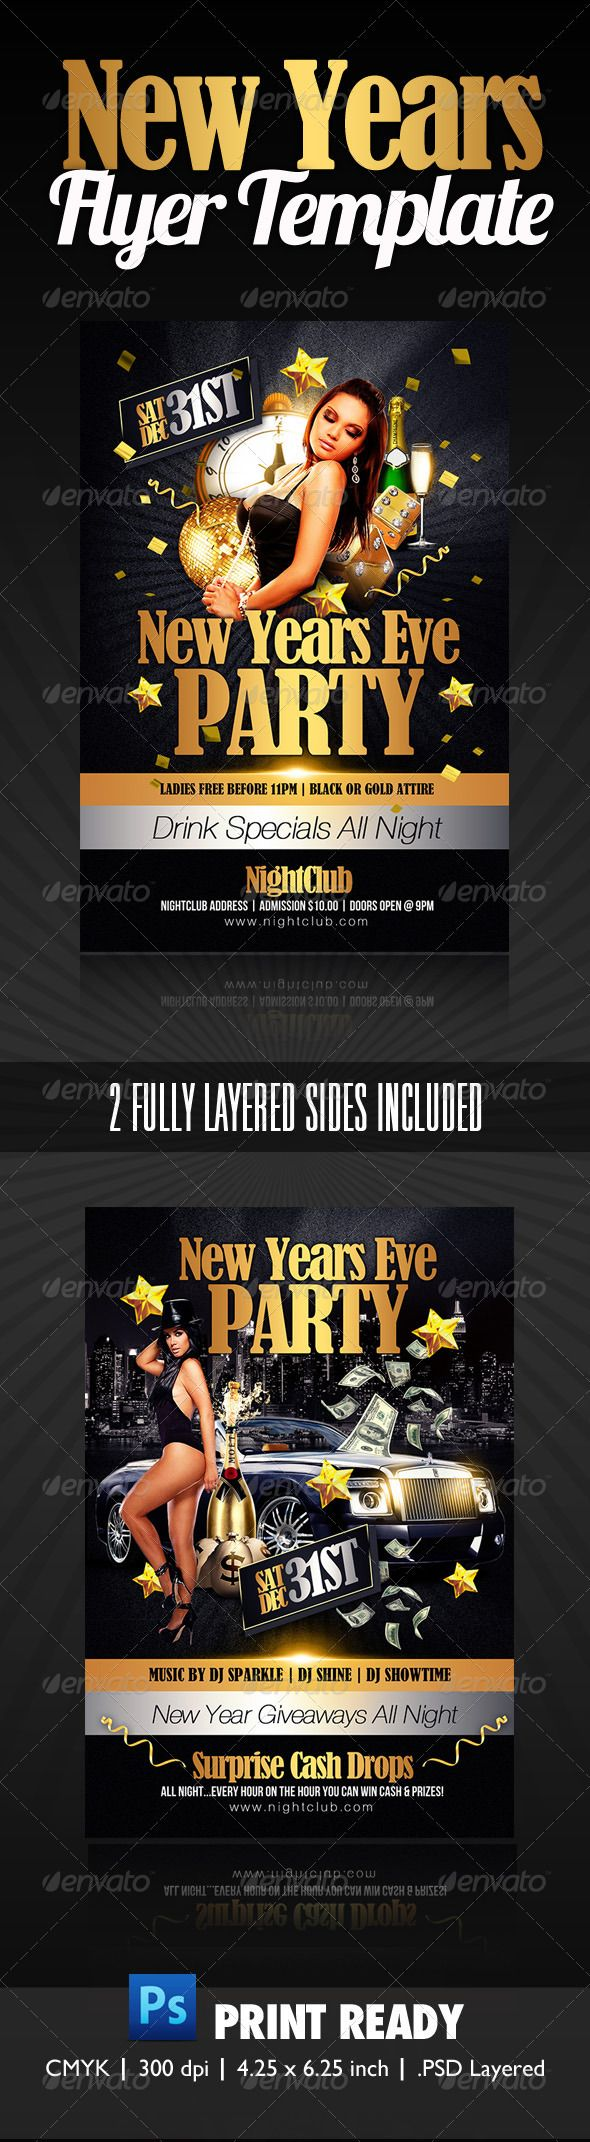 new years party flyer clubs parties events